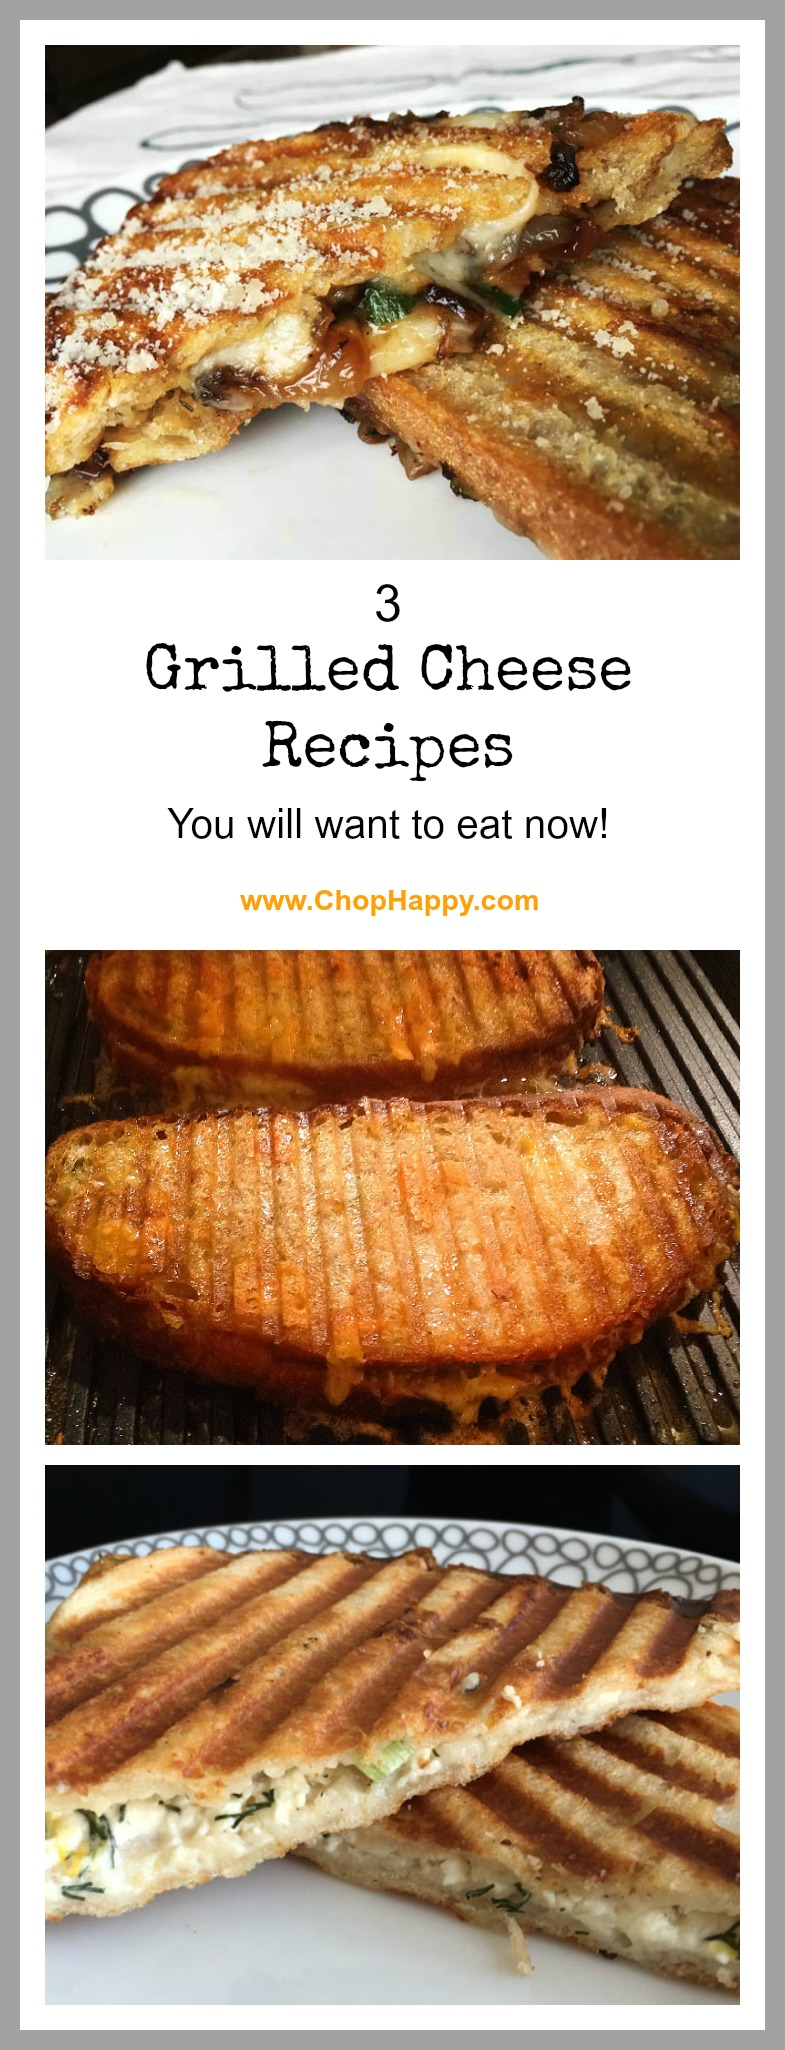 3 Grilled Cheese Recipes- that are so cheesy and yummy it will brighten up any weeknight! www.ChopHappy.com